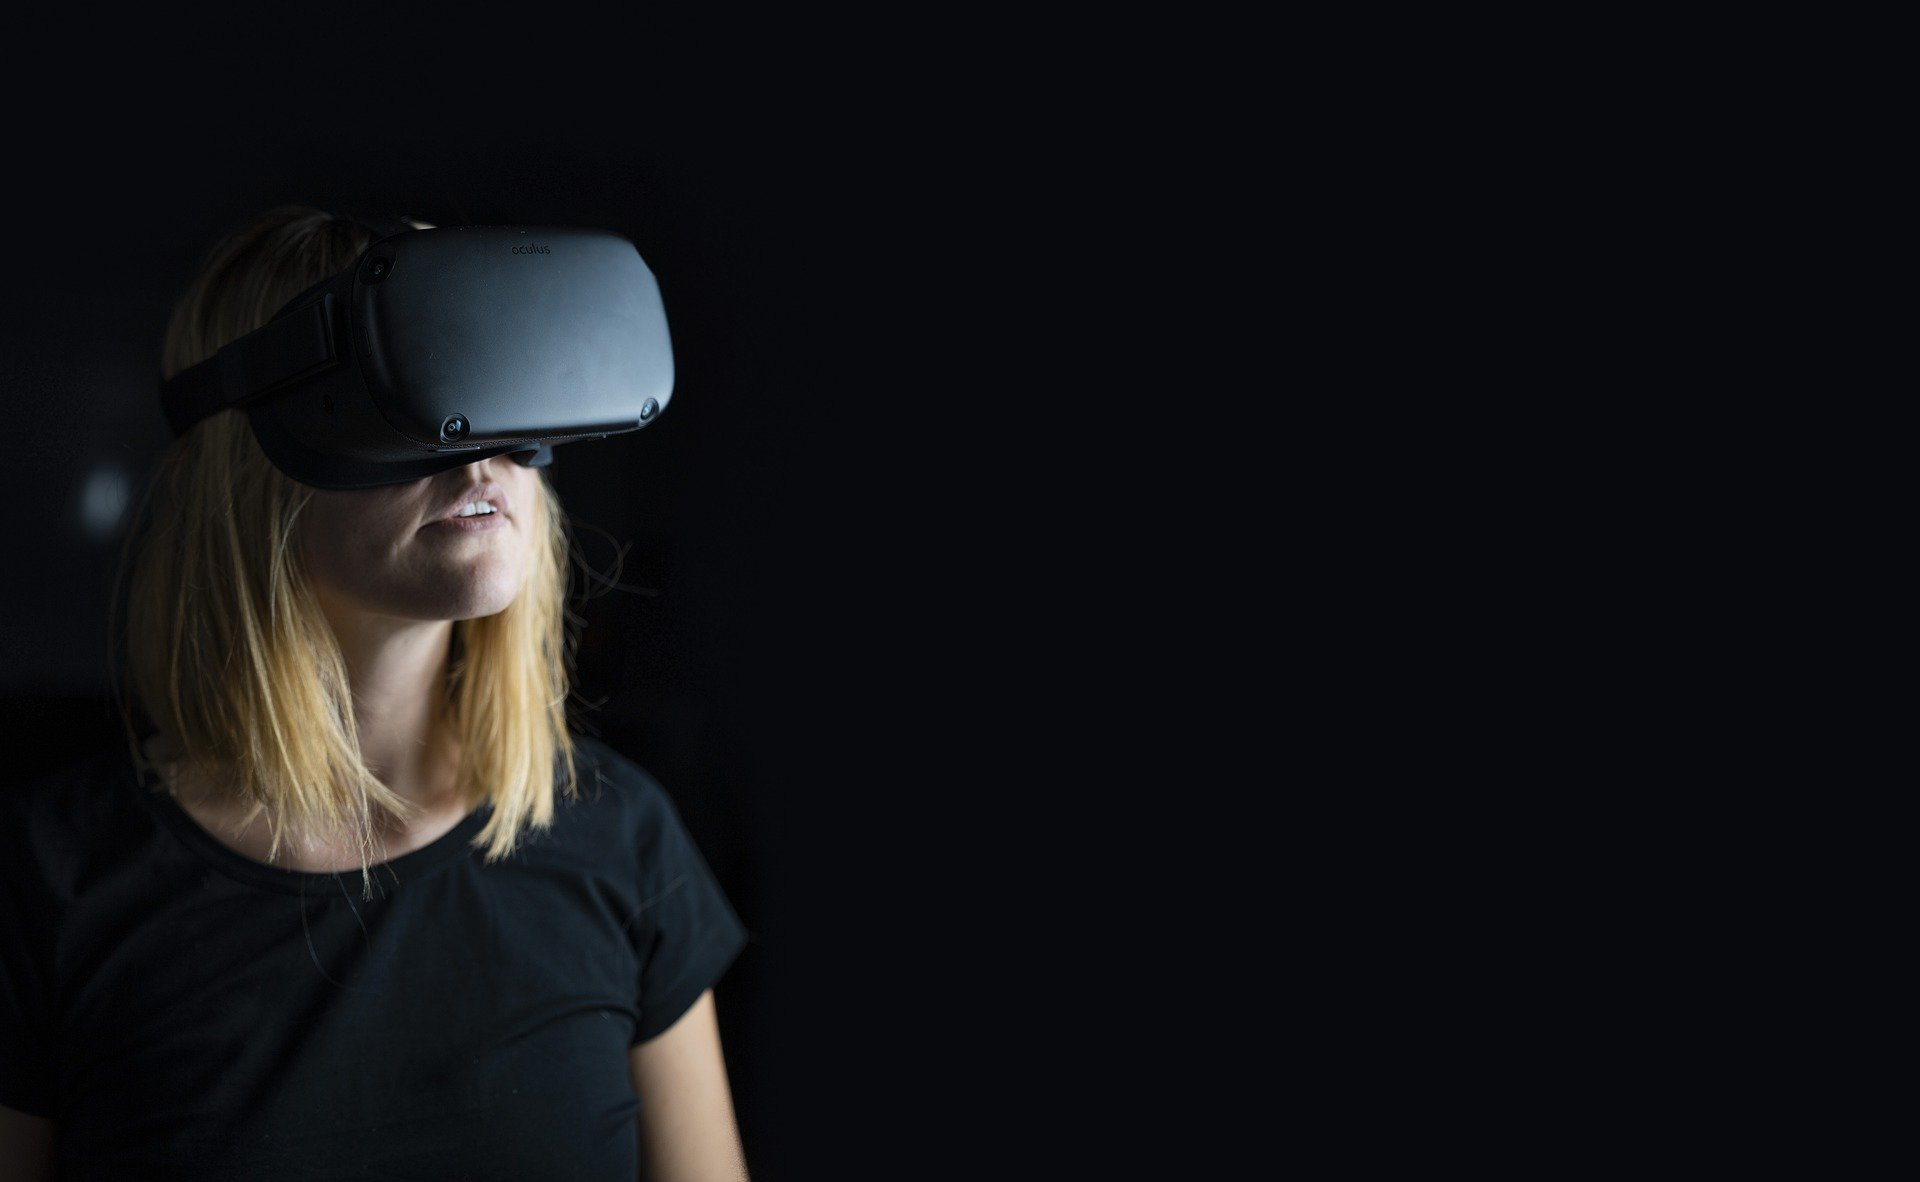 Woman with Virtual Reality Goggles on Black Background